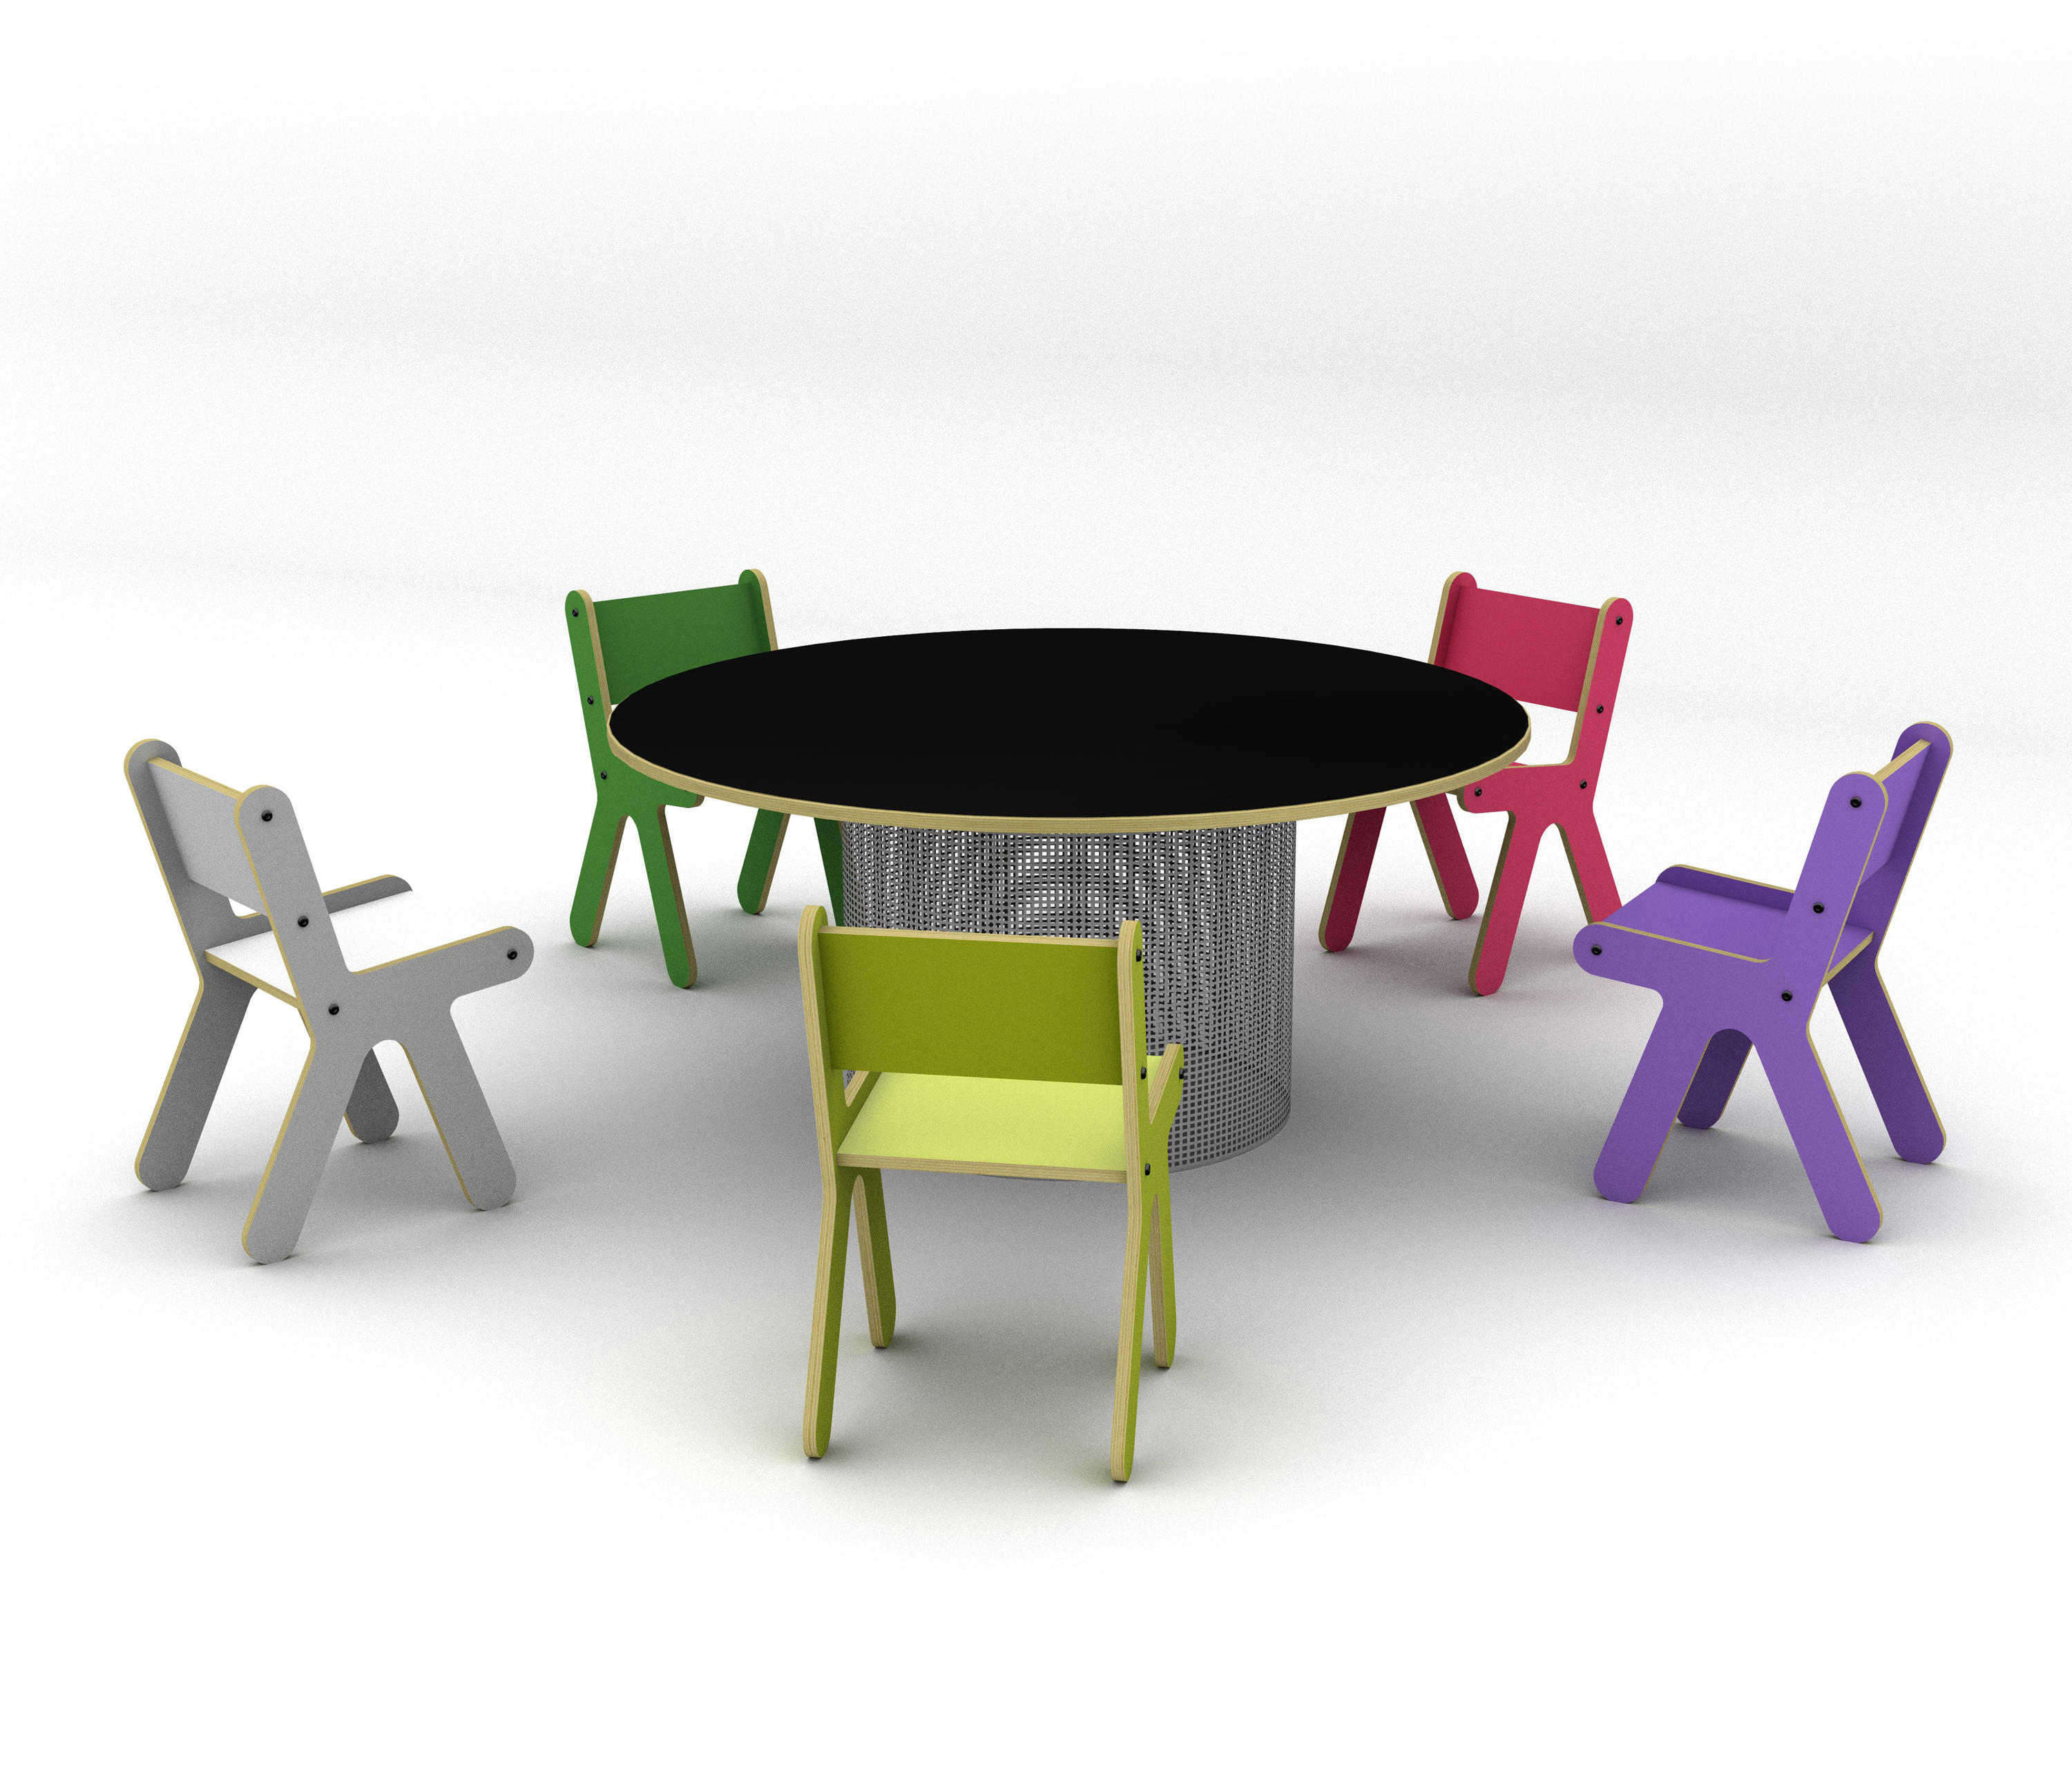 Captivating Pony Chair By KLOSS ...